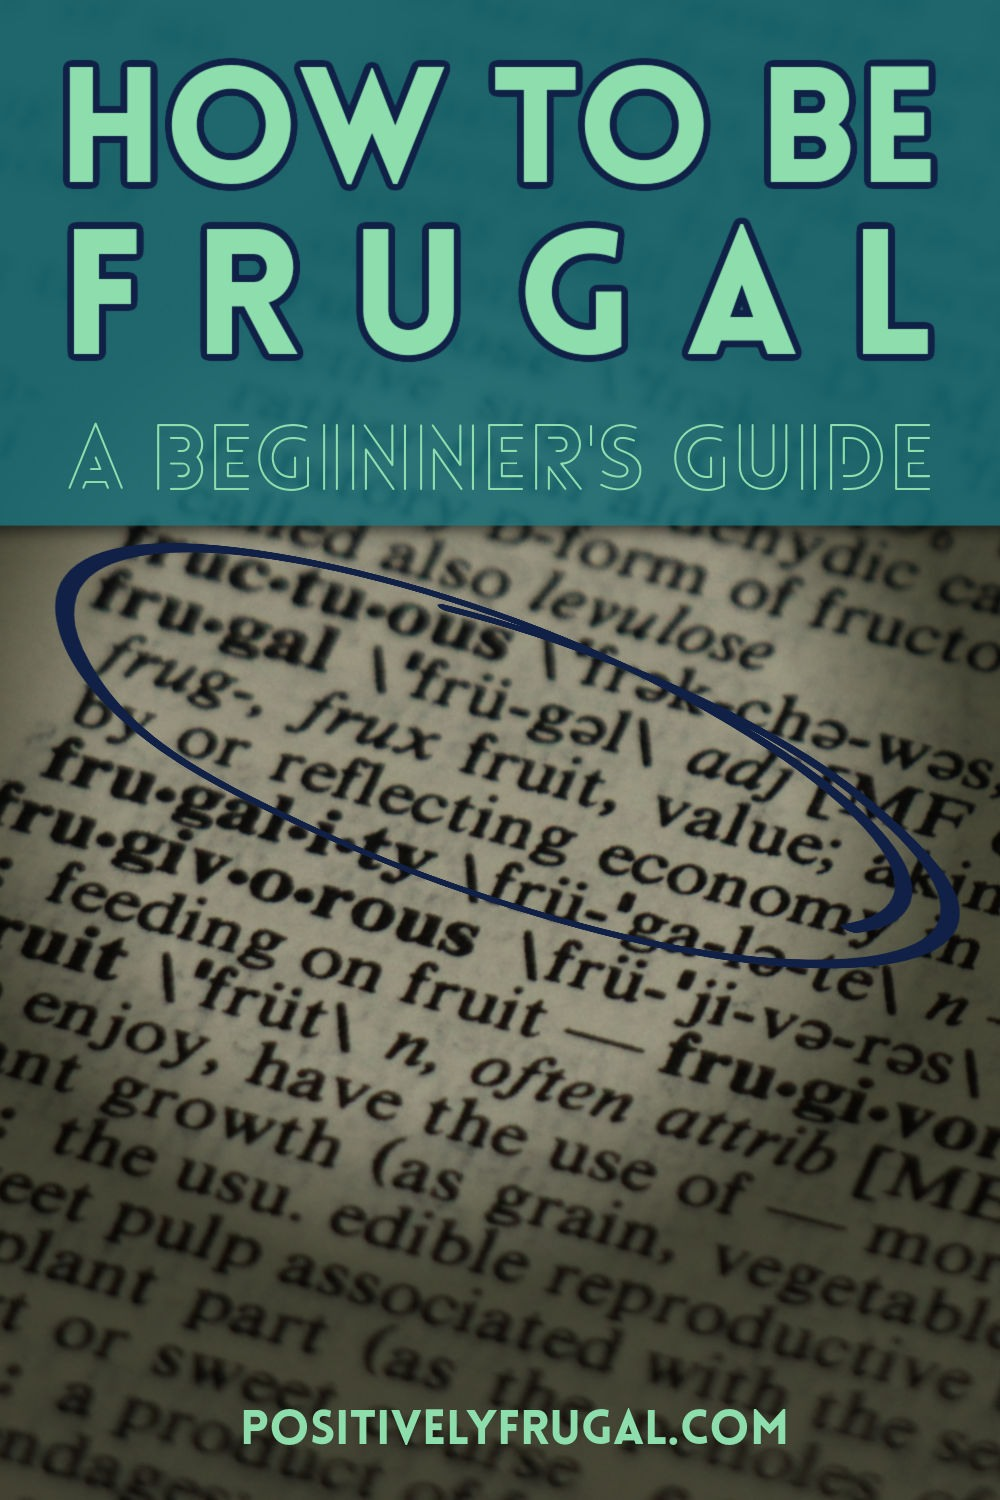 How To Be Frugal Beginner's Guide by PositivelyFrugal.com